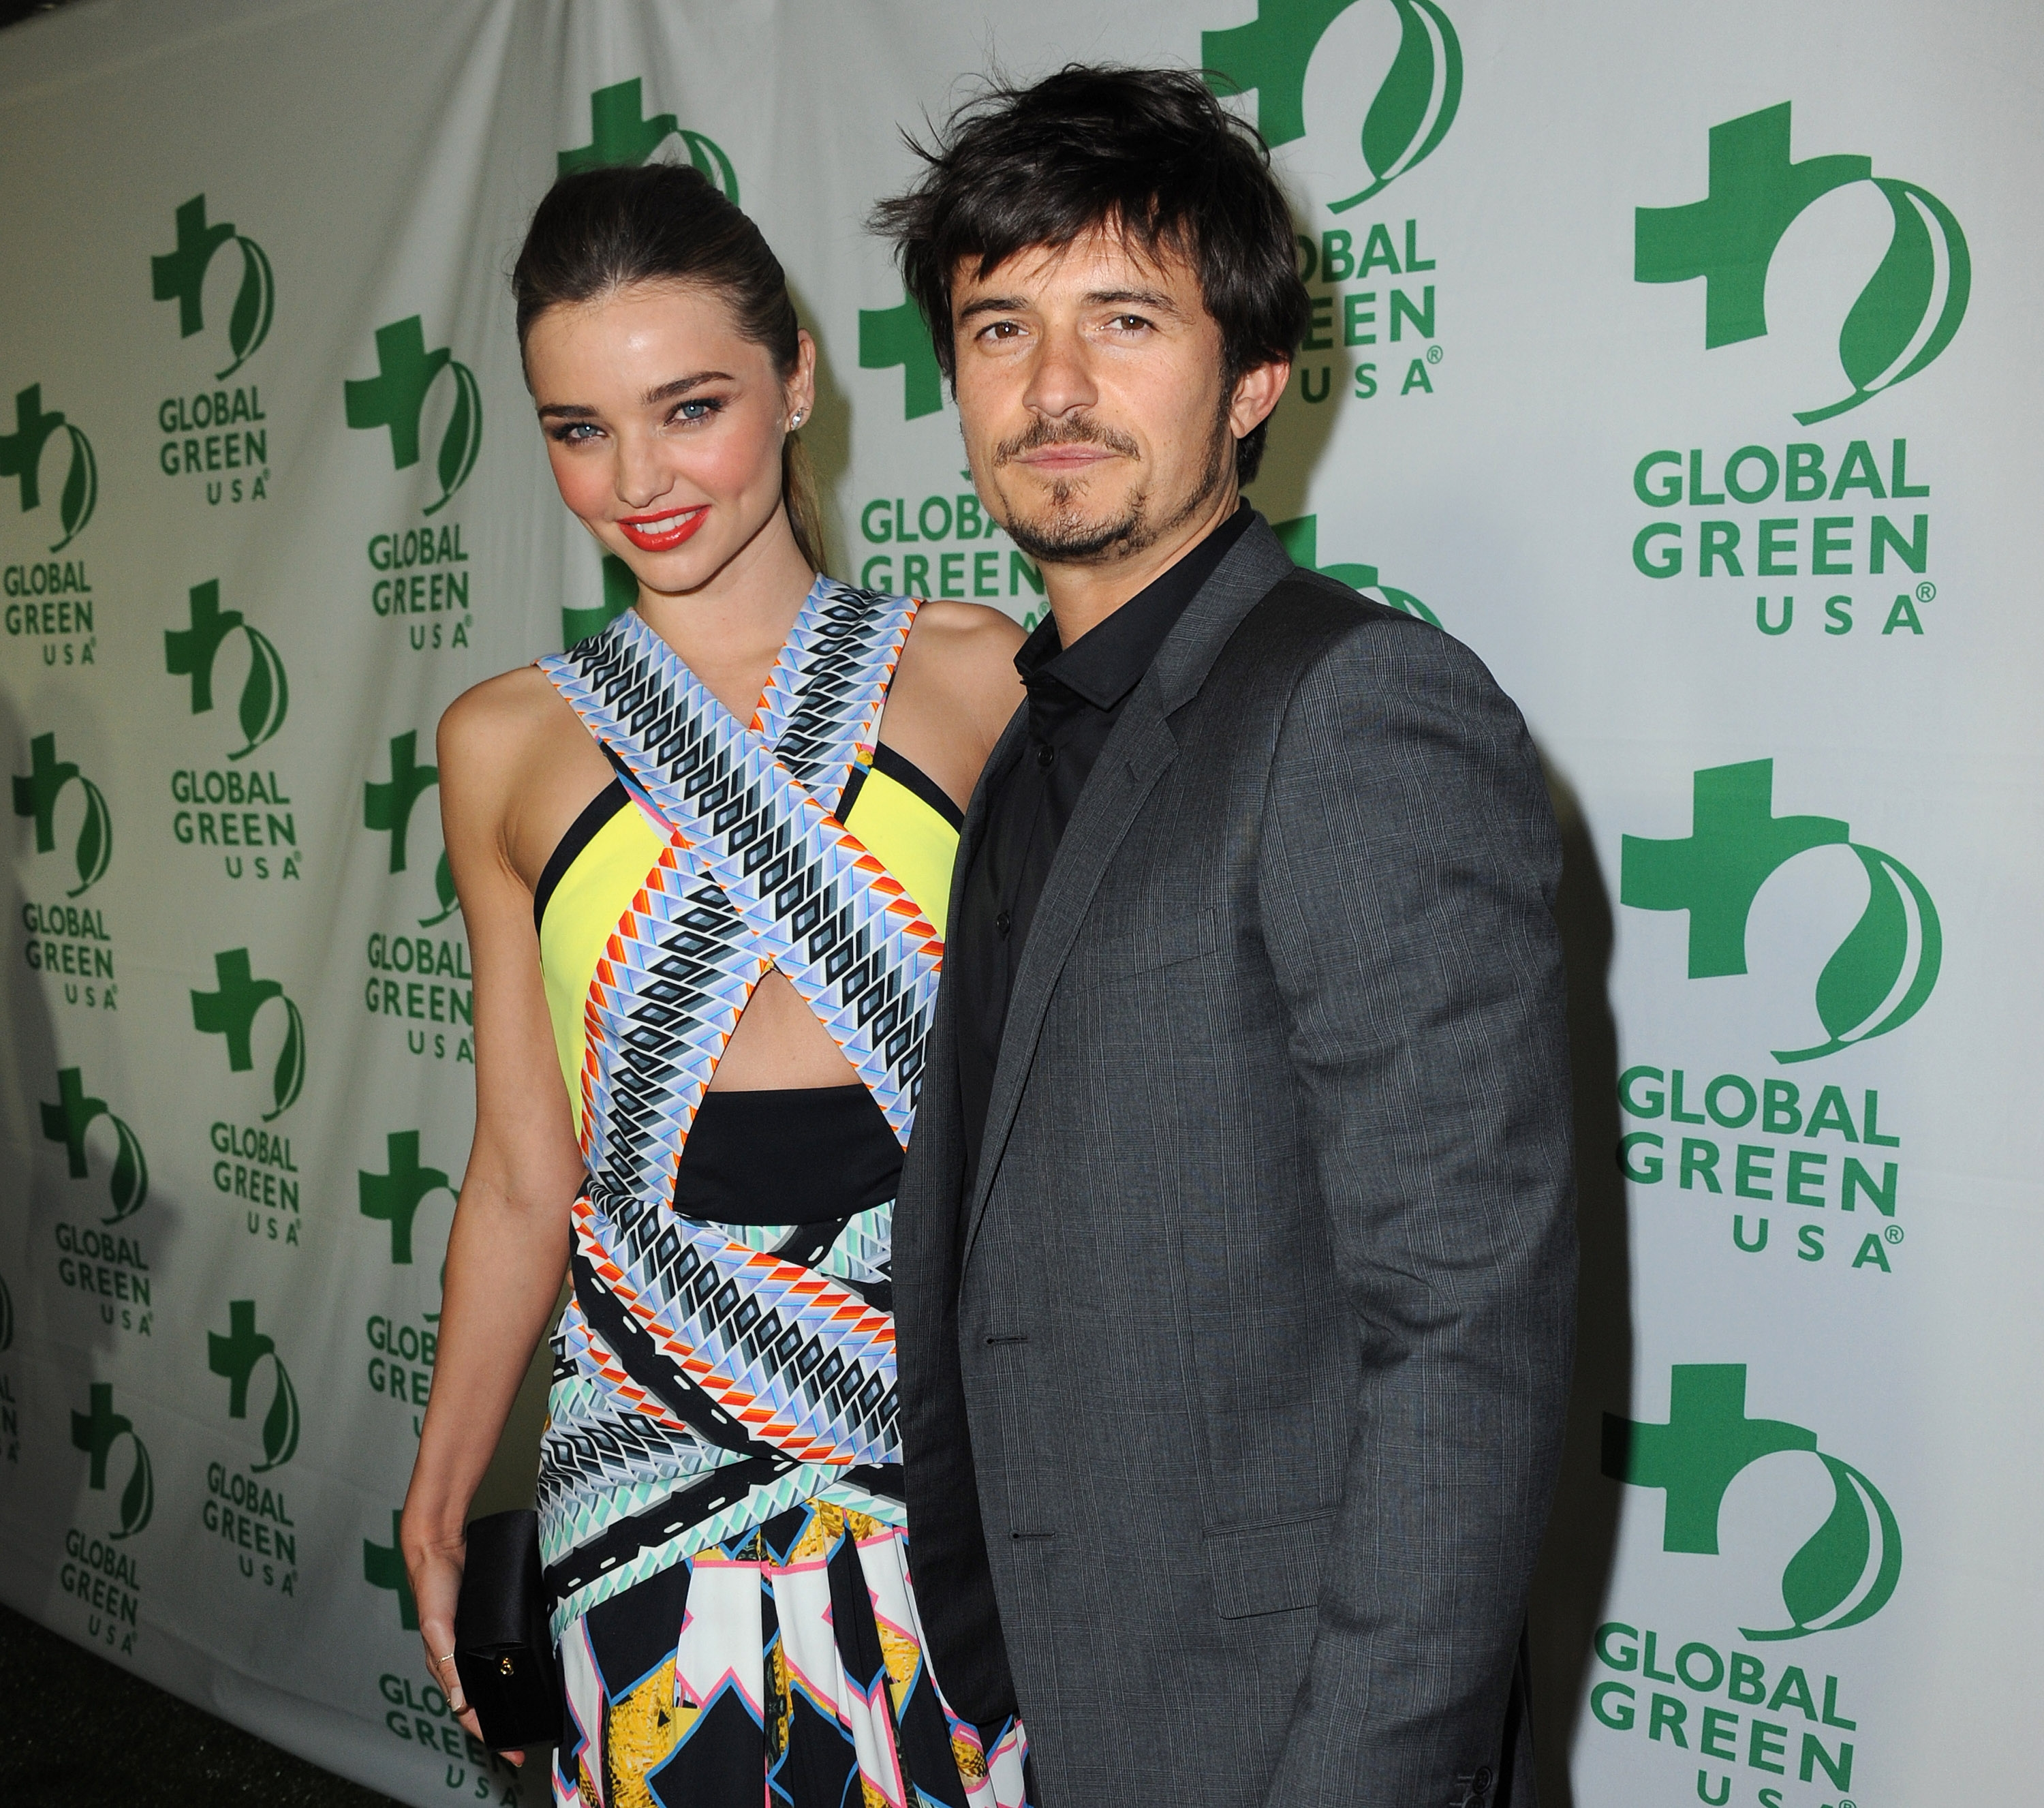 It's all over between Orlando Bloom and Miranda Kerr, shown here in February, after six years together.